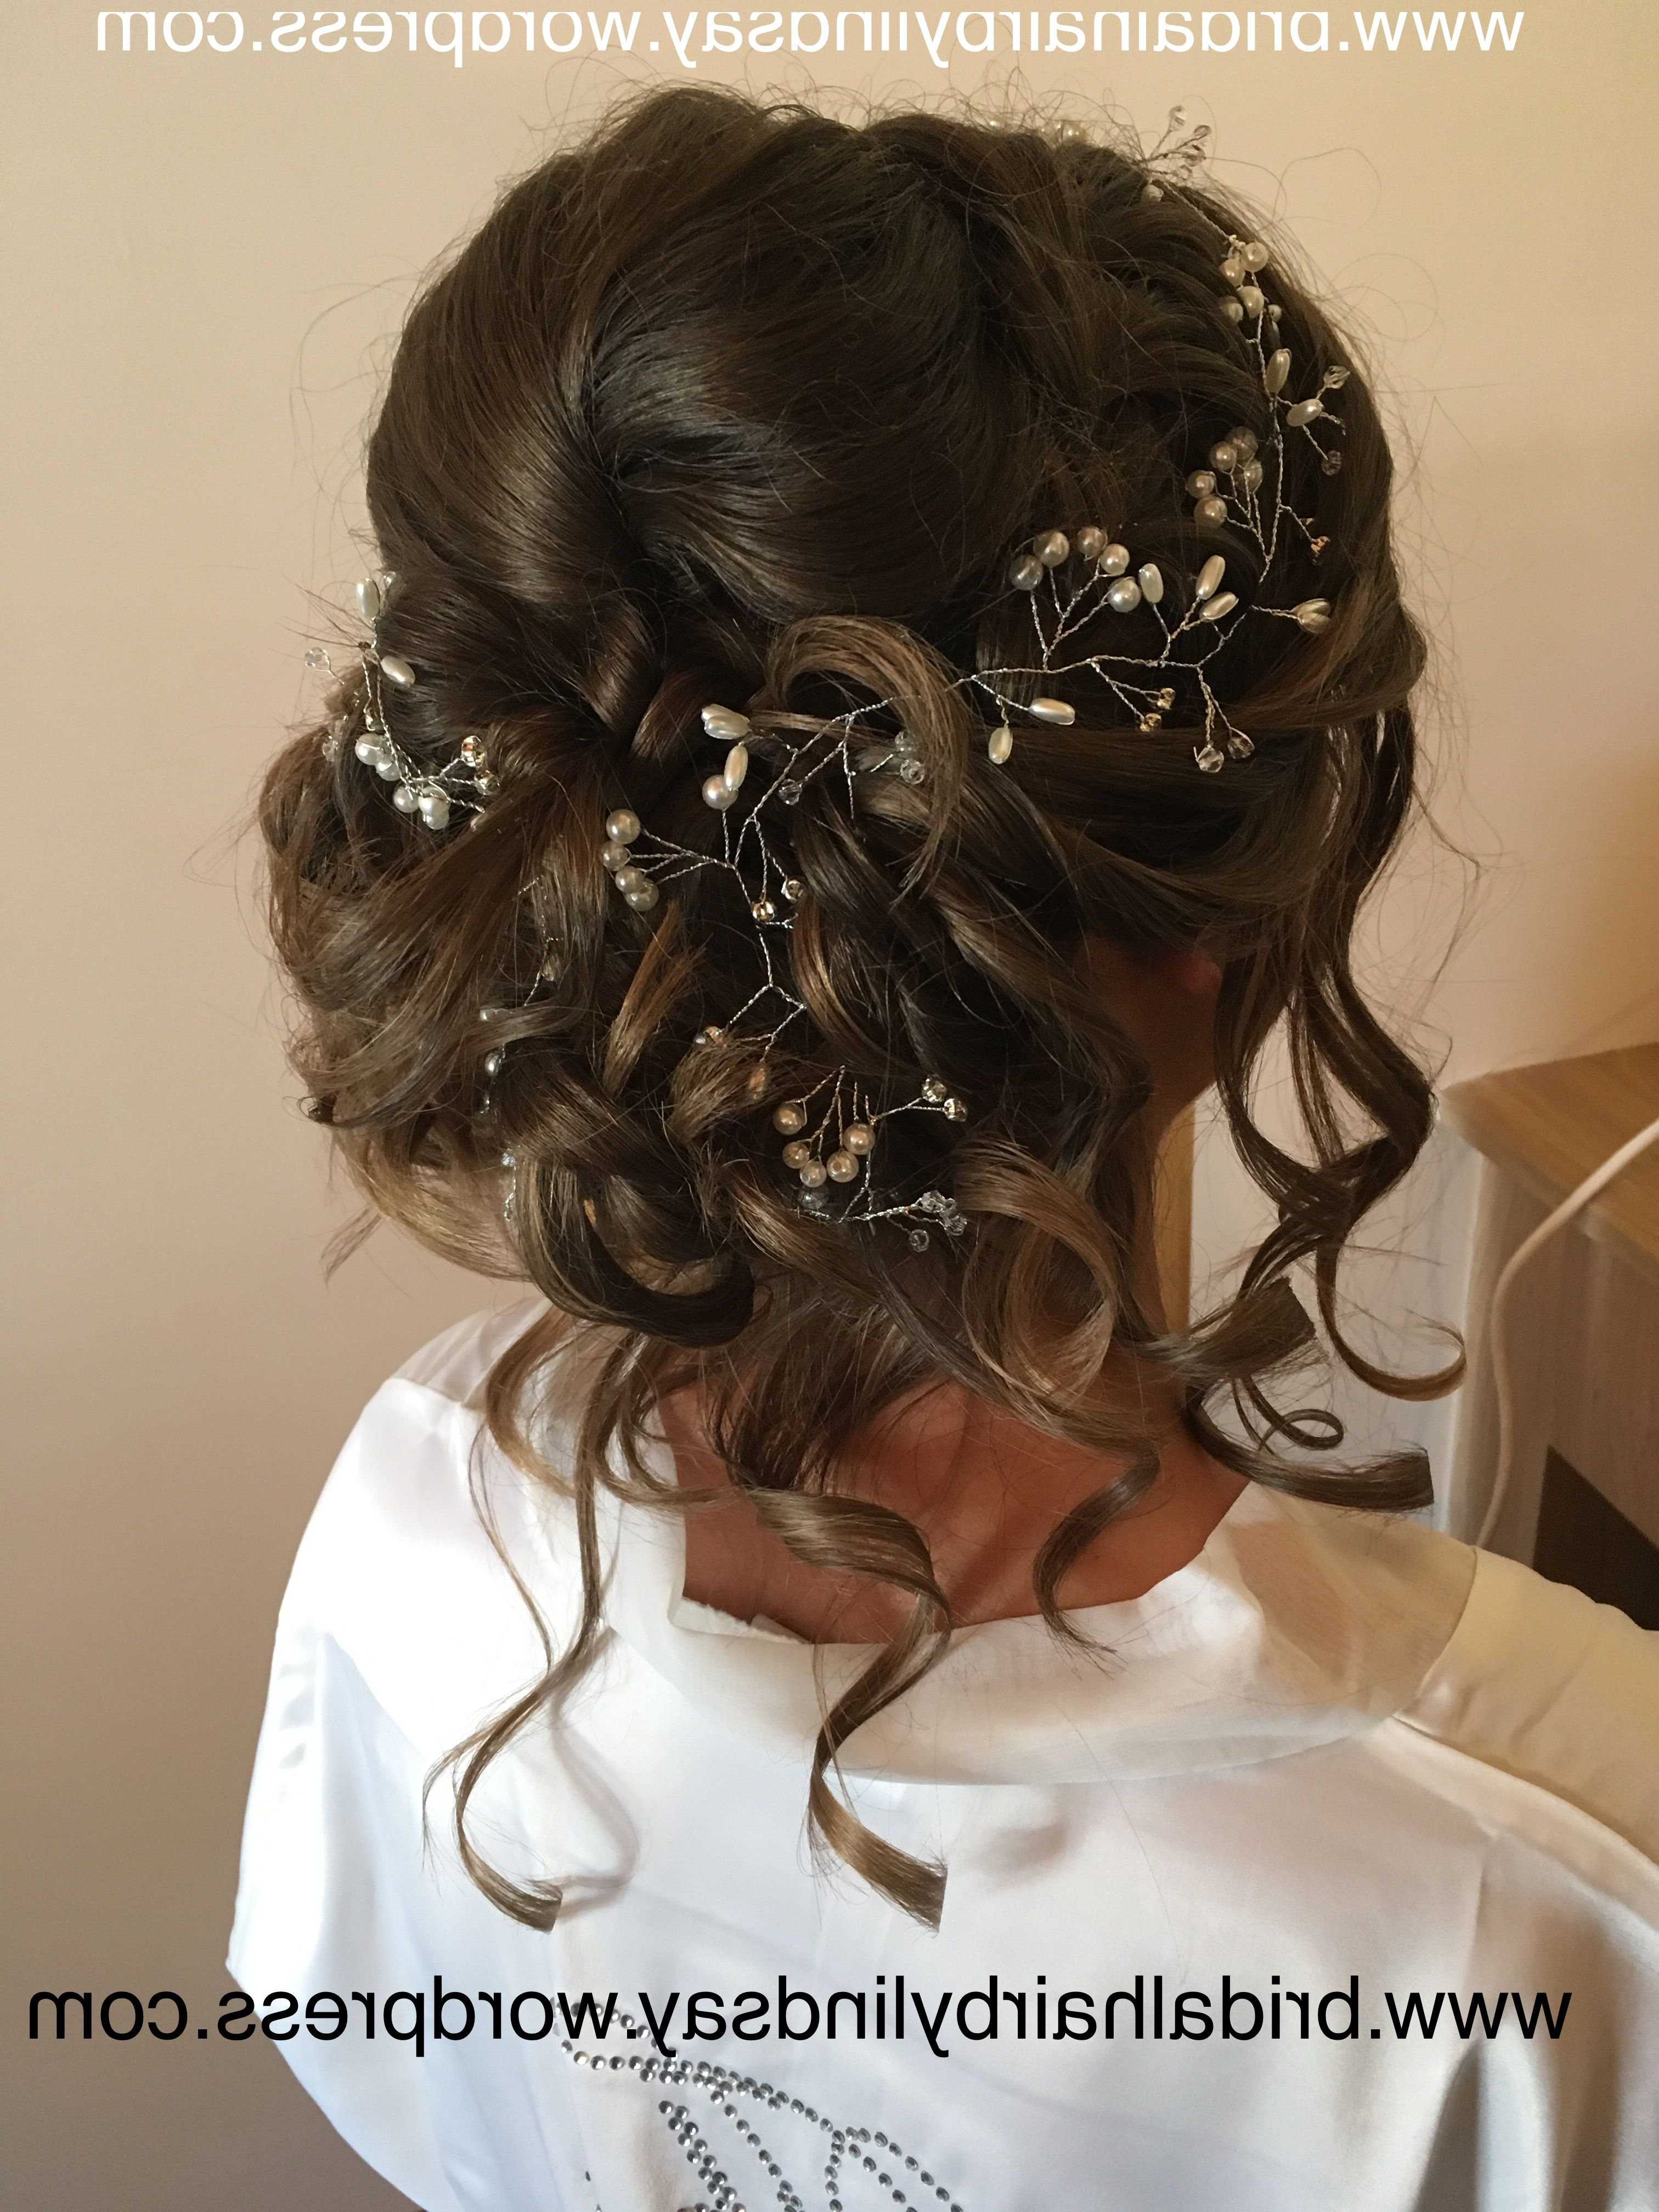 Newest Subtle Curls And Bun Hairstyles For Wedding In Bridalhairme #stafford #cannock #midlands #updo #cascade #curls (View 15 of 20)